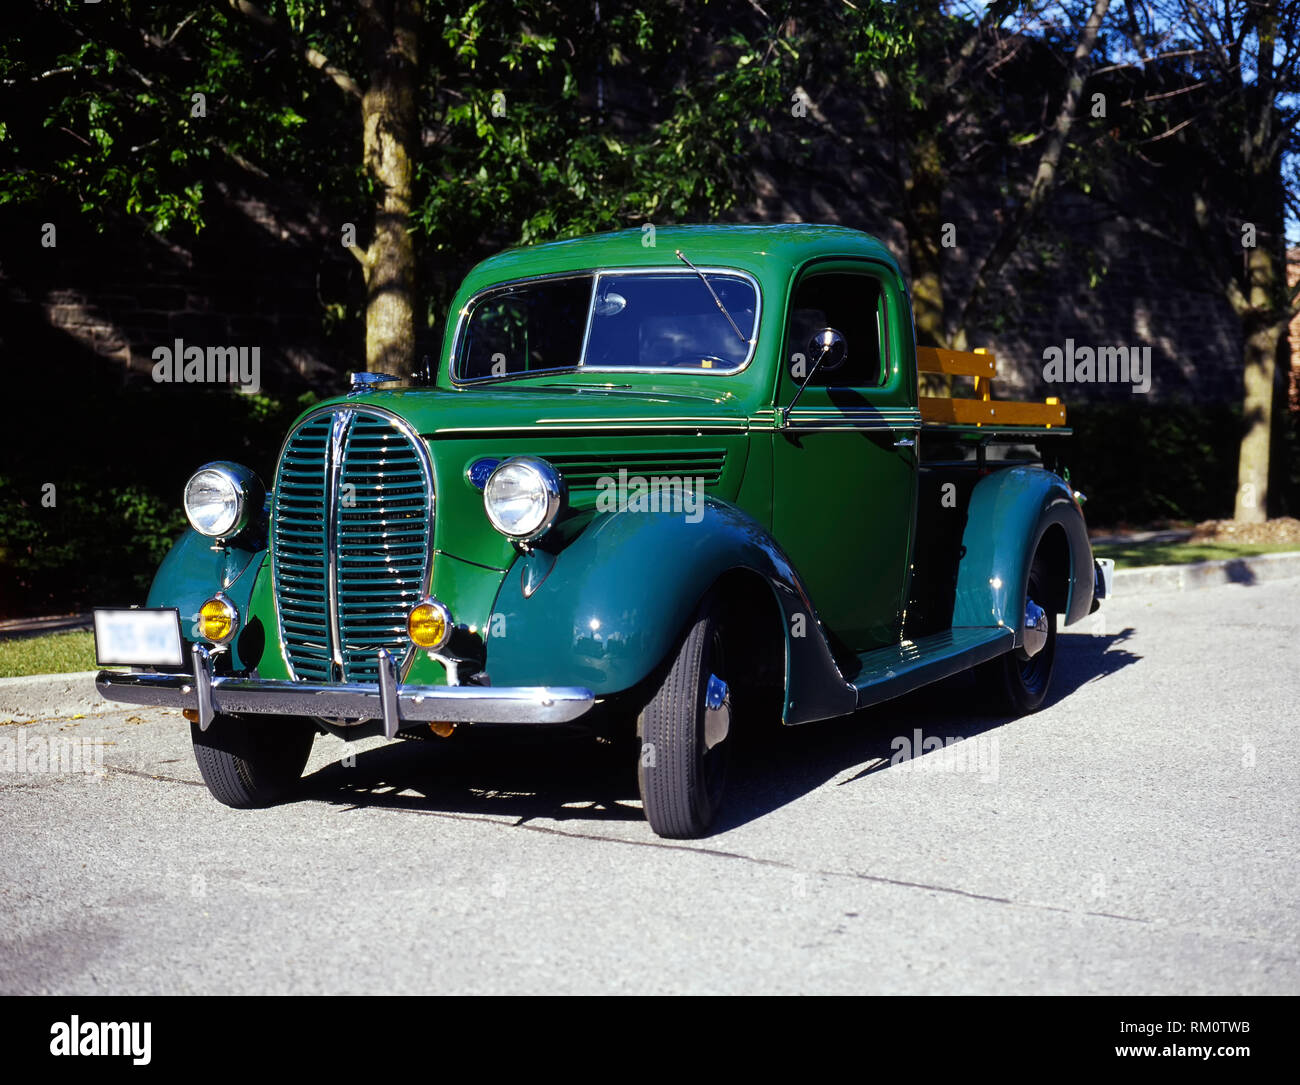 1938 Ford Truck >> 1938 Ford Pickup Truck Stock Photo 236047431 Alamy